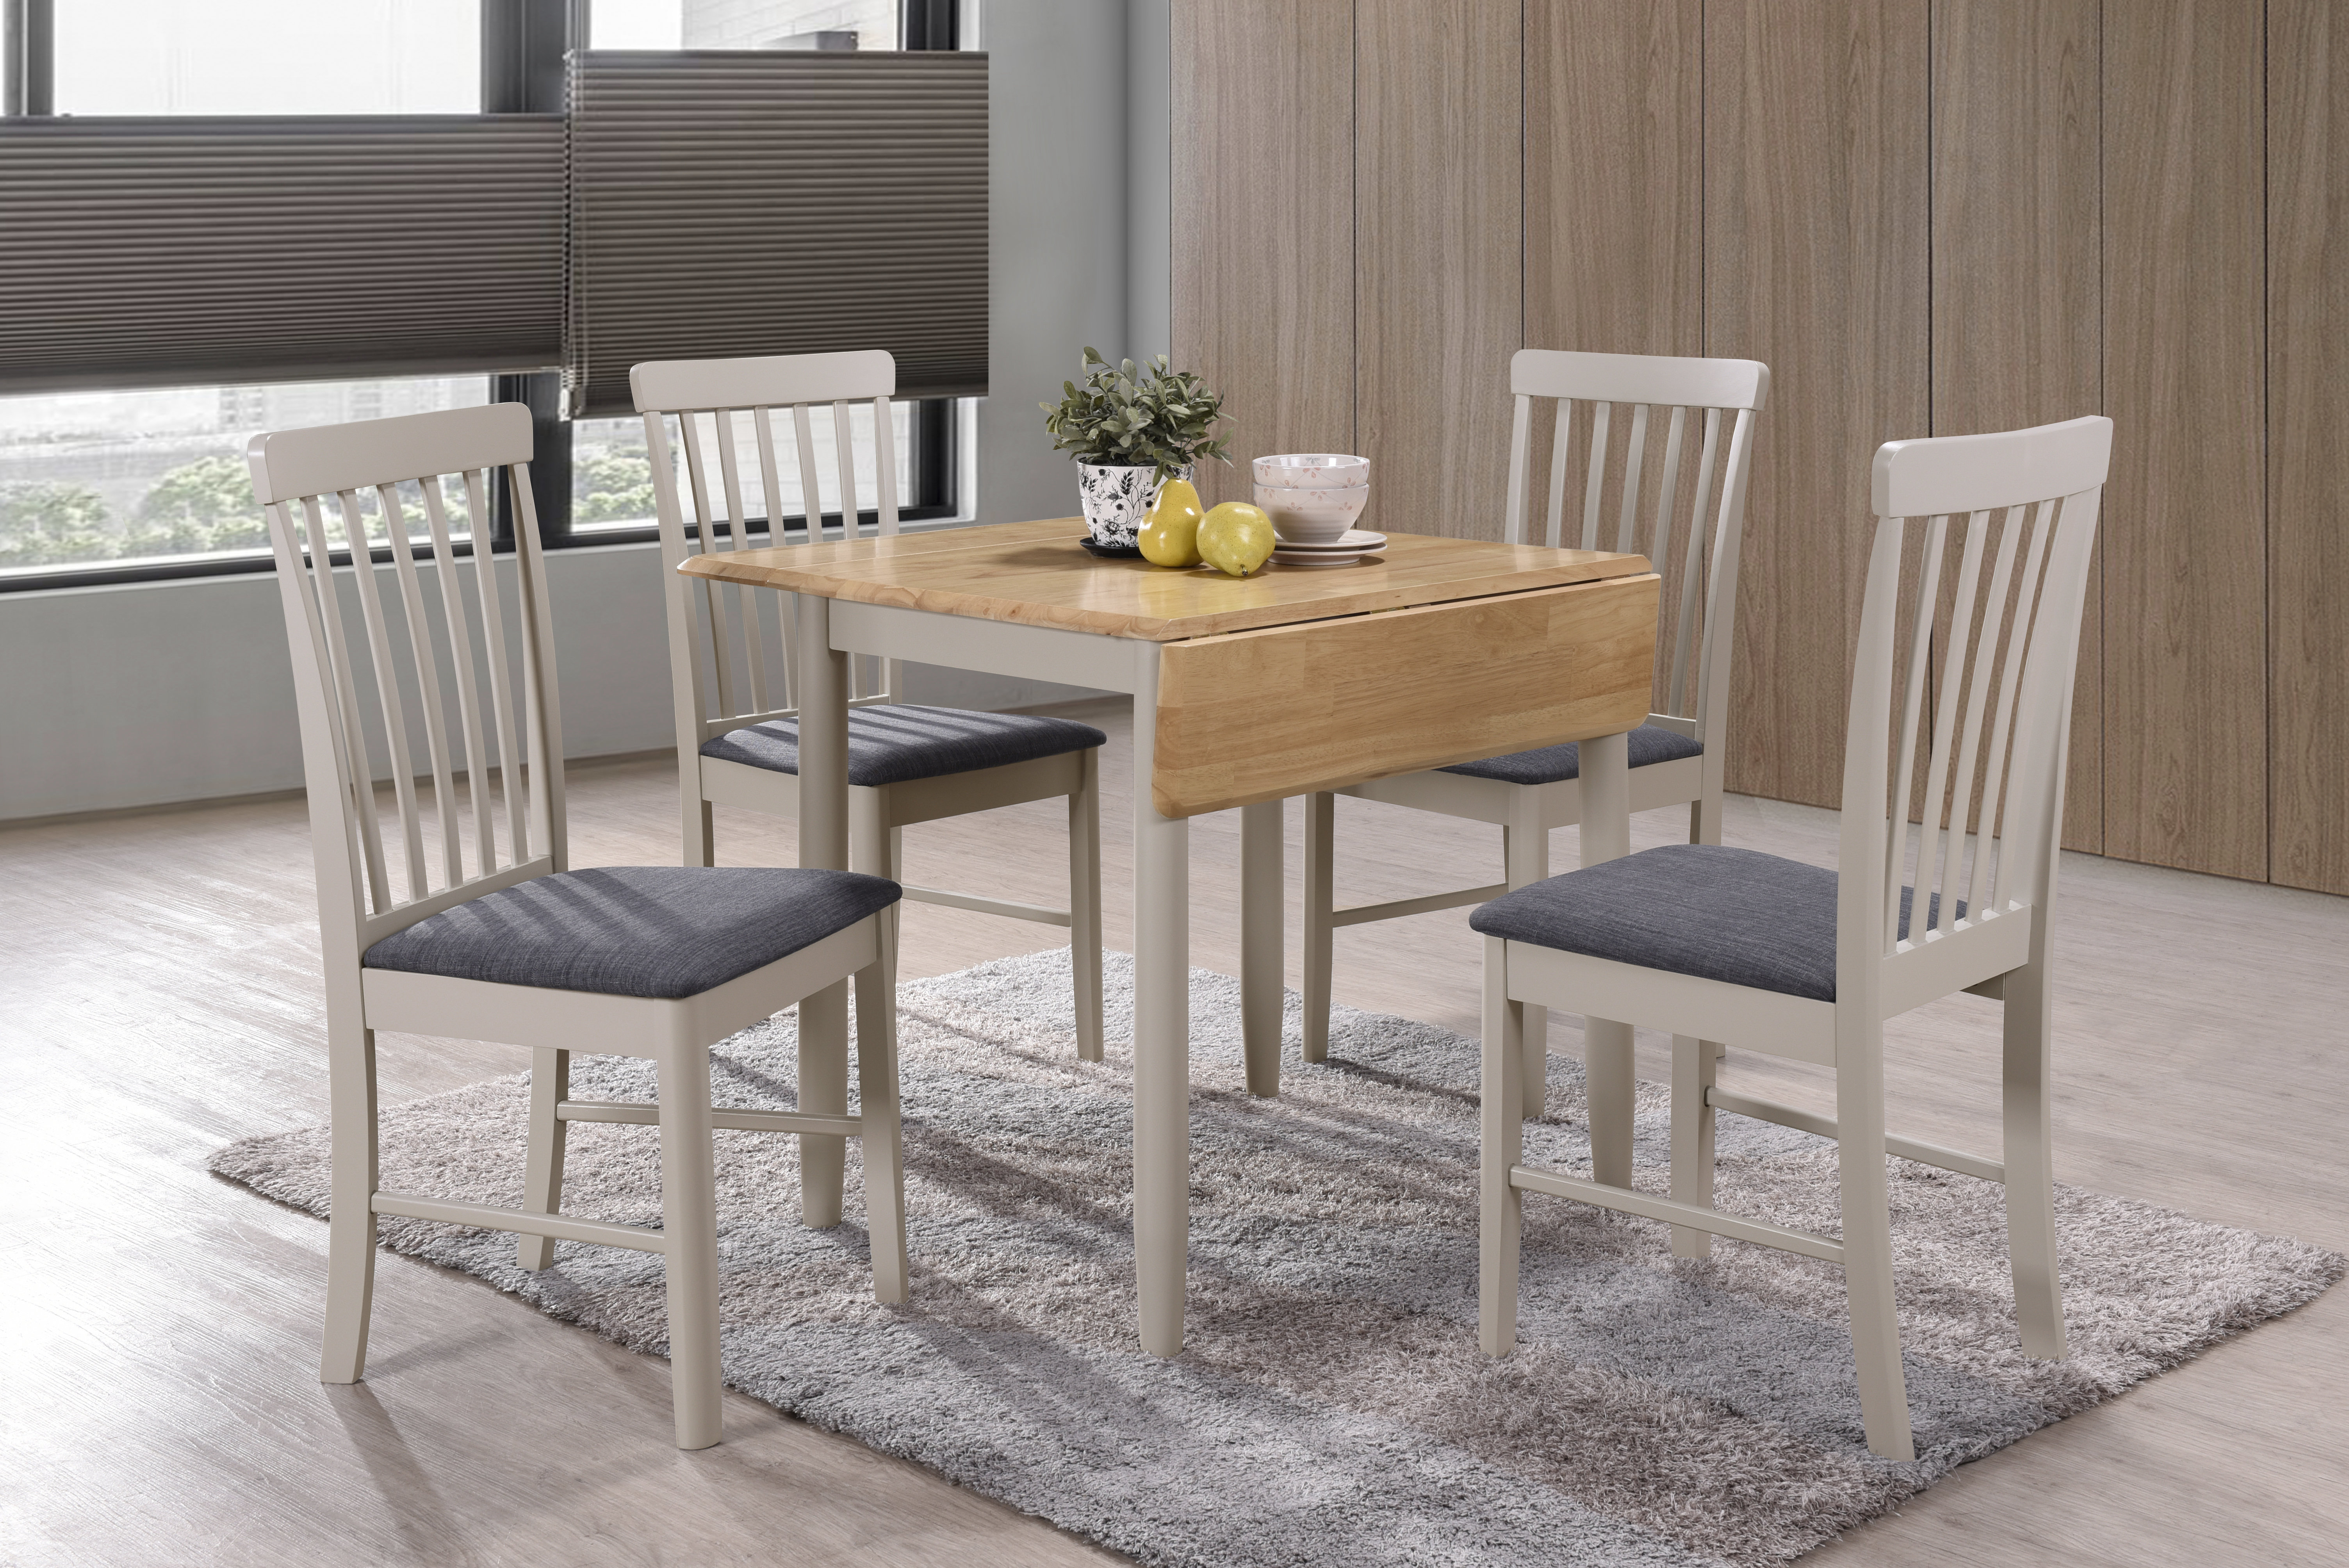 Brentwood Folding/extendable Dining Table Inside 2017 Northwoods 3 Piece Dining Sets (Image 3 of 20)